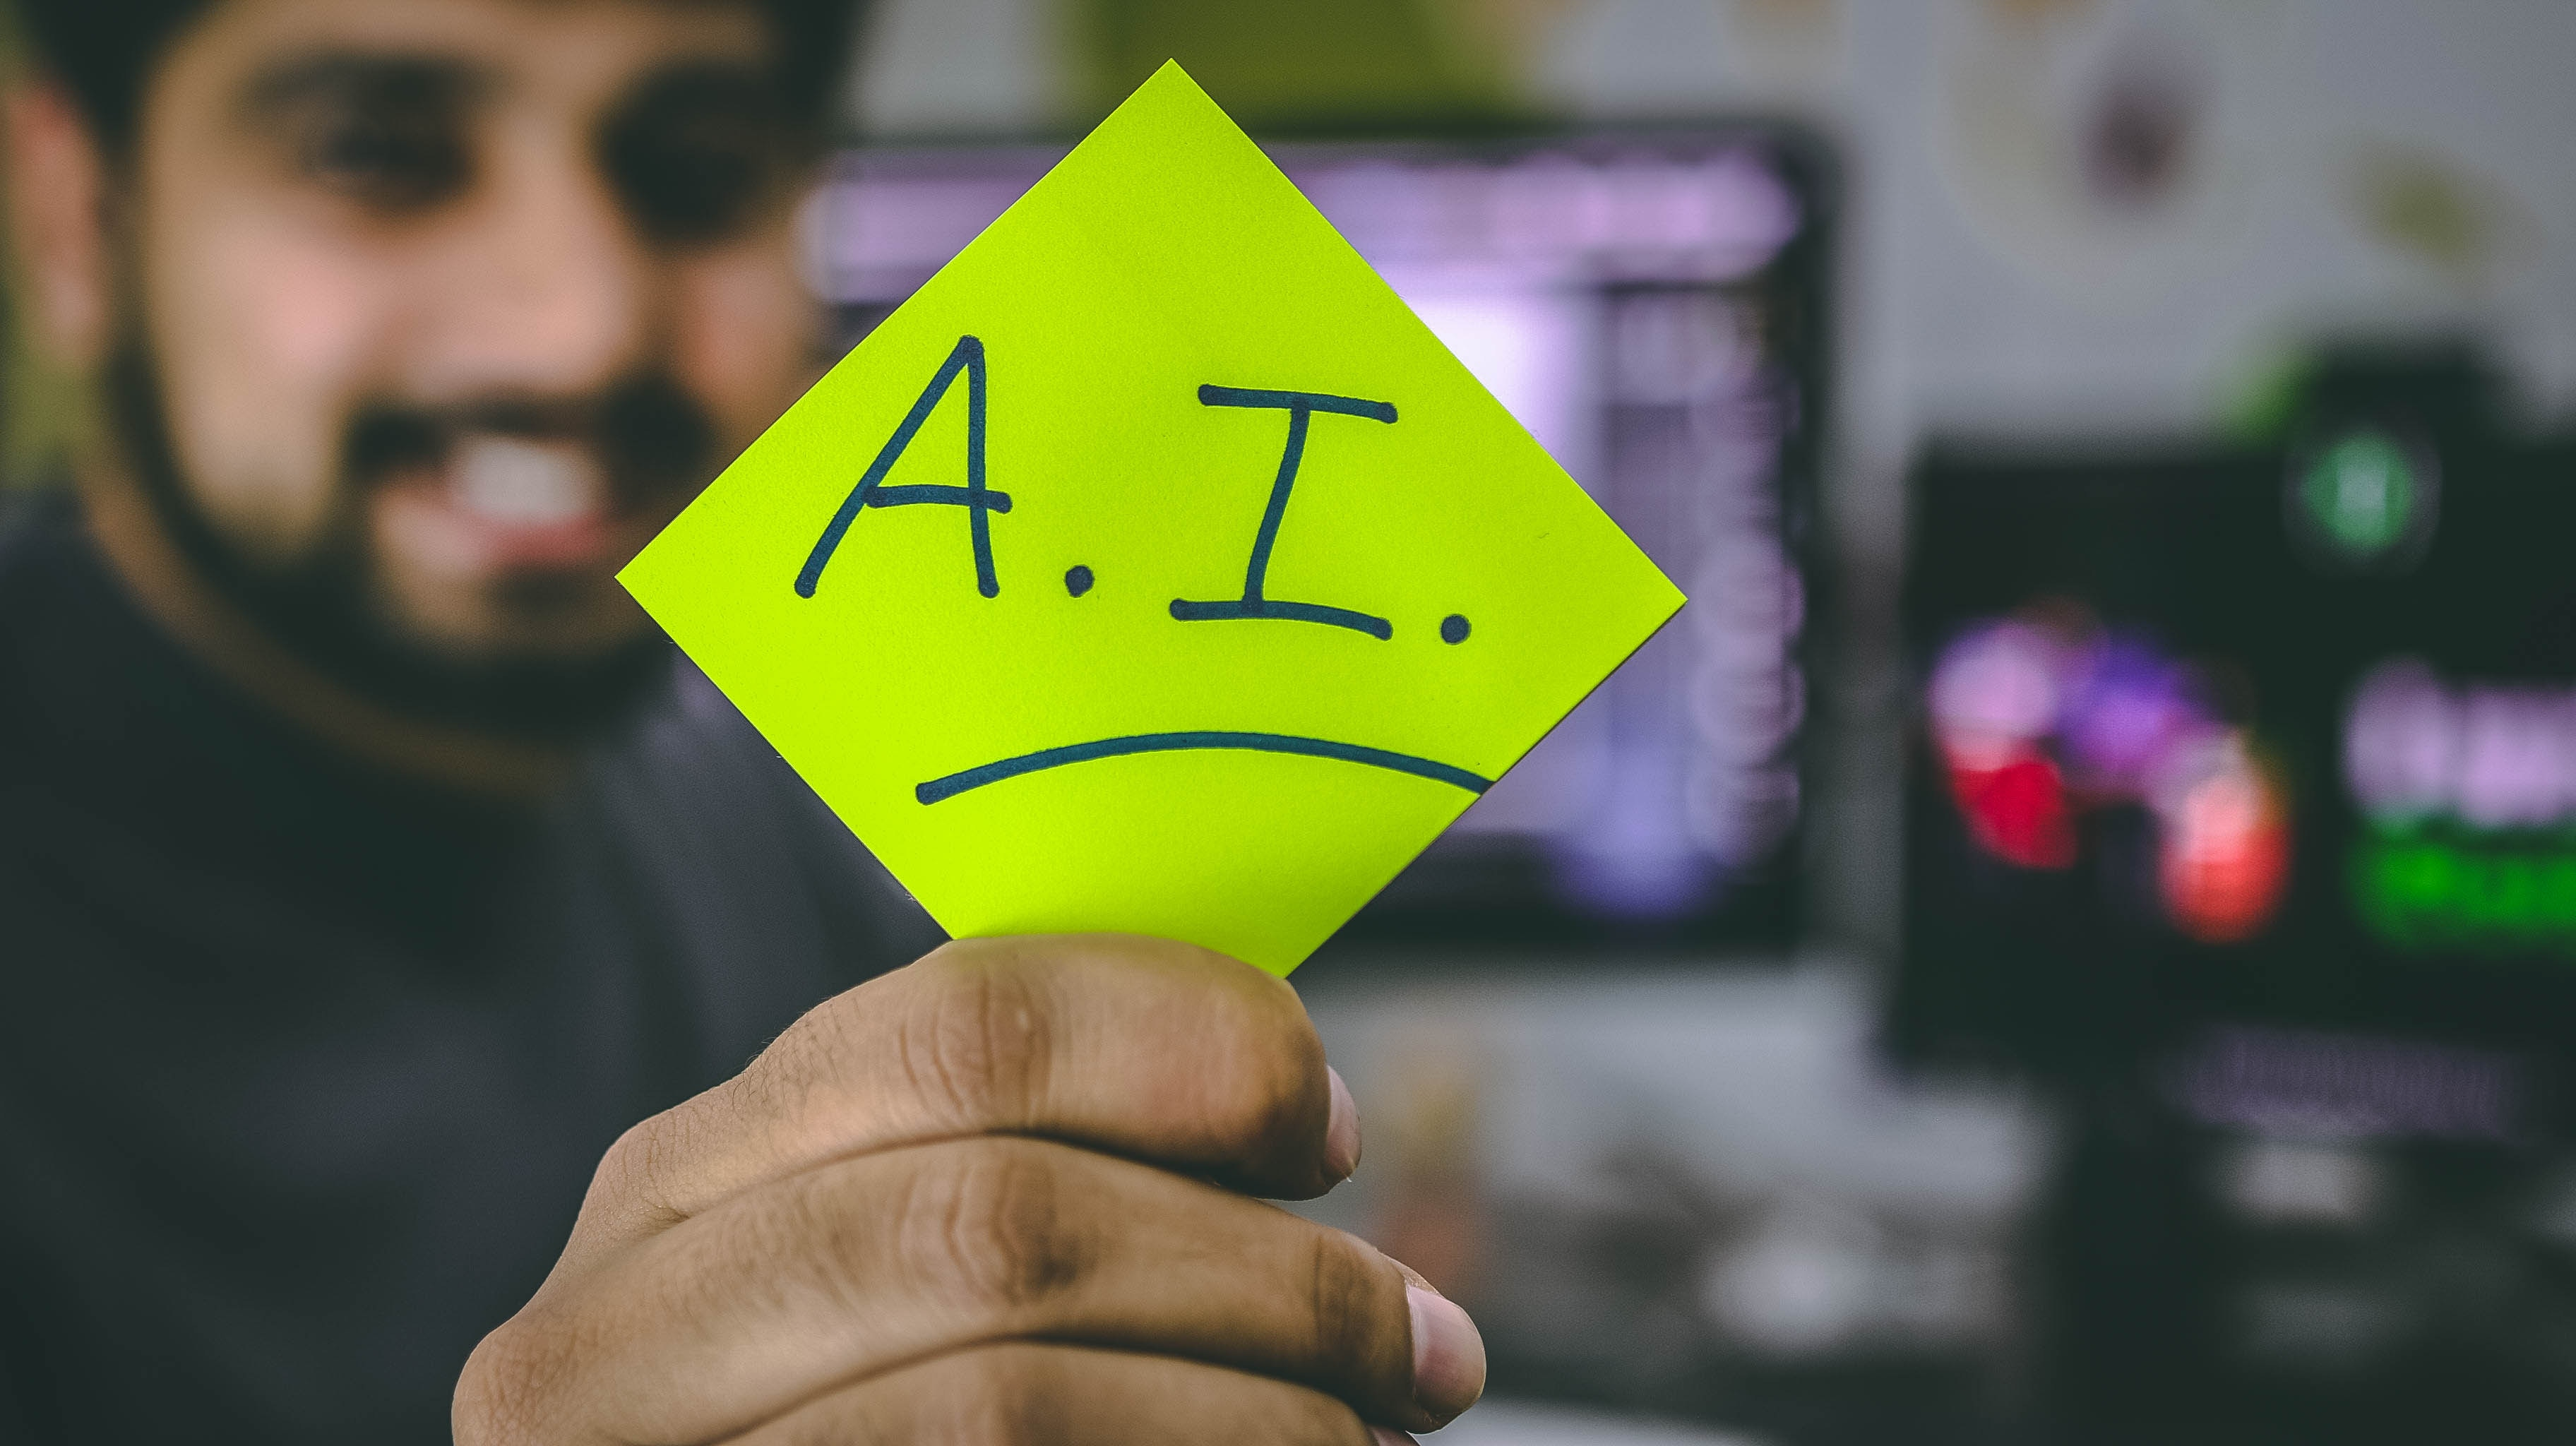 Can AI Help Small Companies Better Compete with Market Leaders?